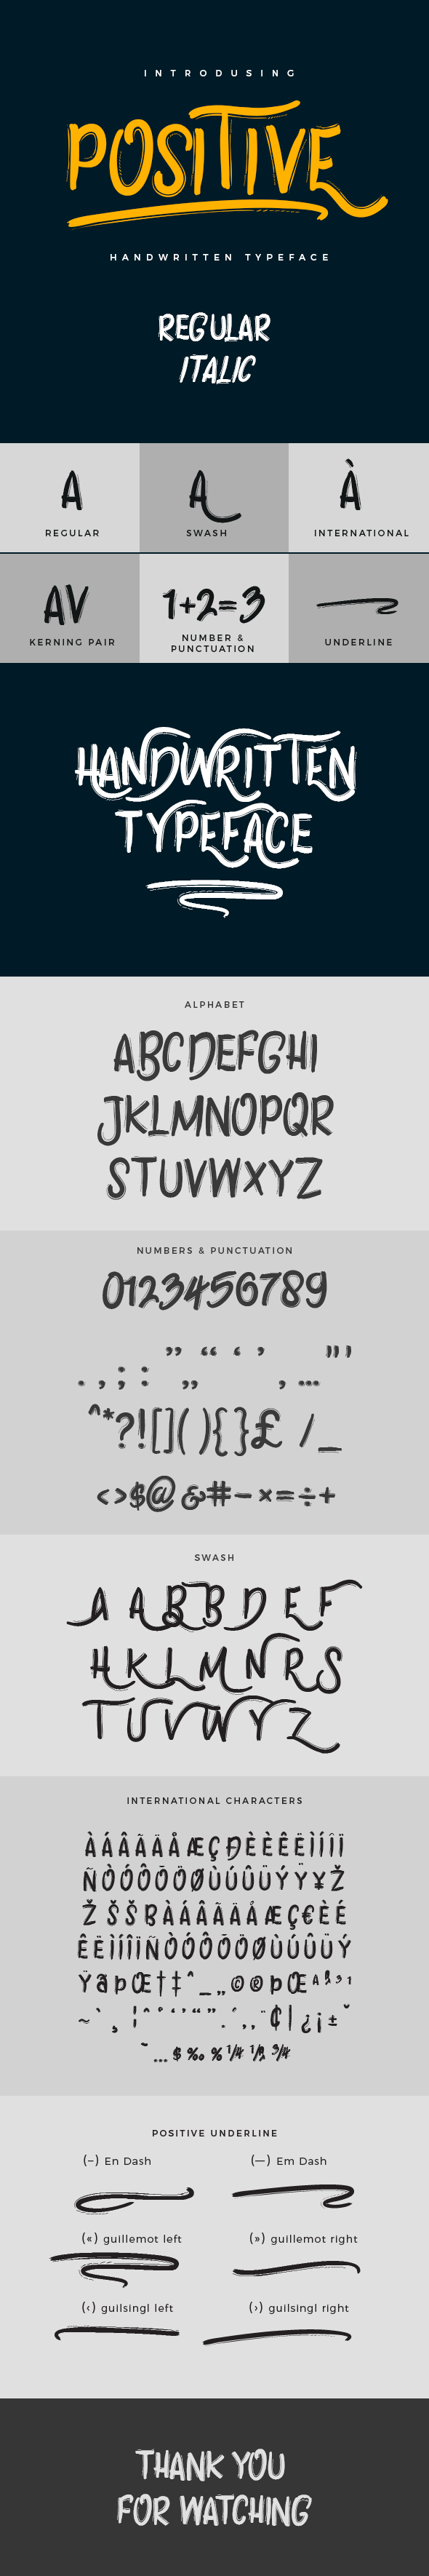 Positive Typeface - Hand-writing Script